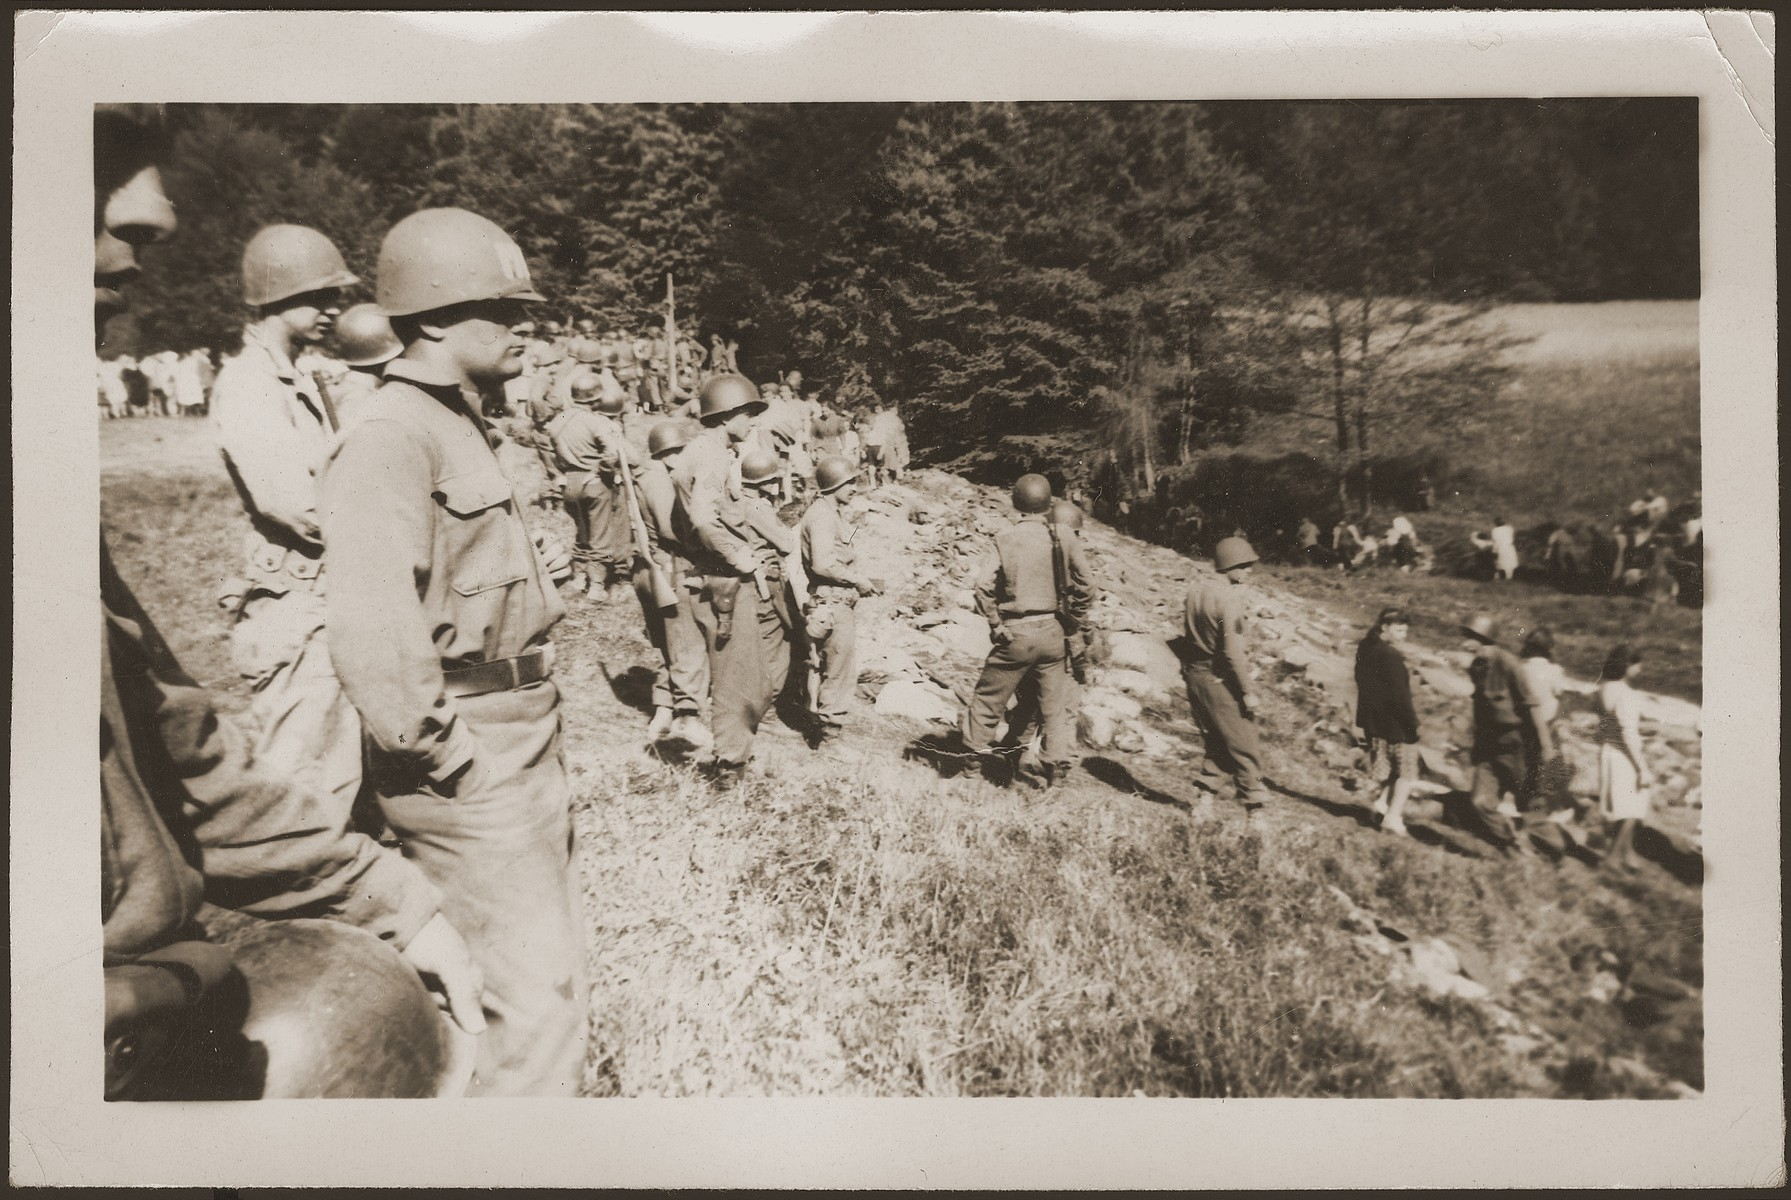 Under the supervision of American soldiers, German civilians from Nammering look at the corpses of prisoners exhumed from a mass grave near the town.